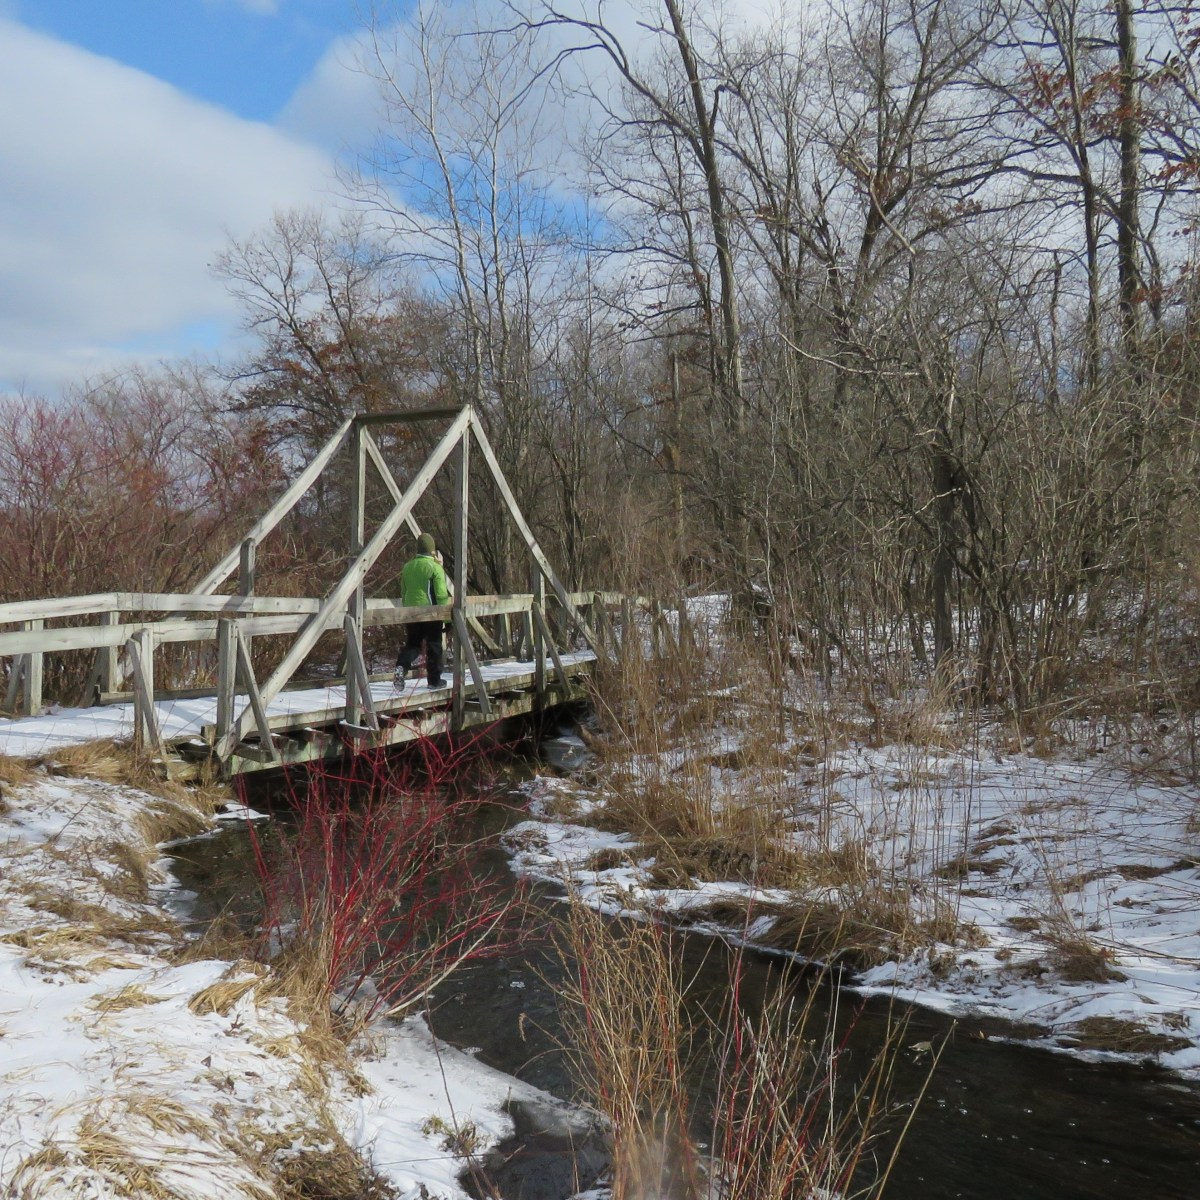 People snowshoeing on a wooden bridge